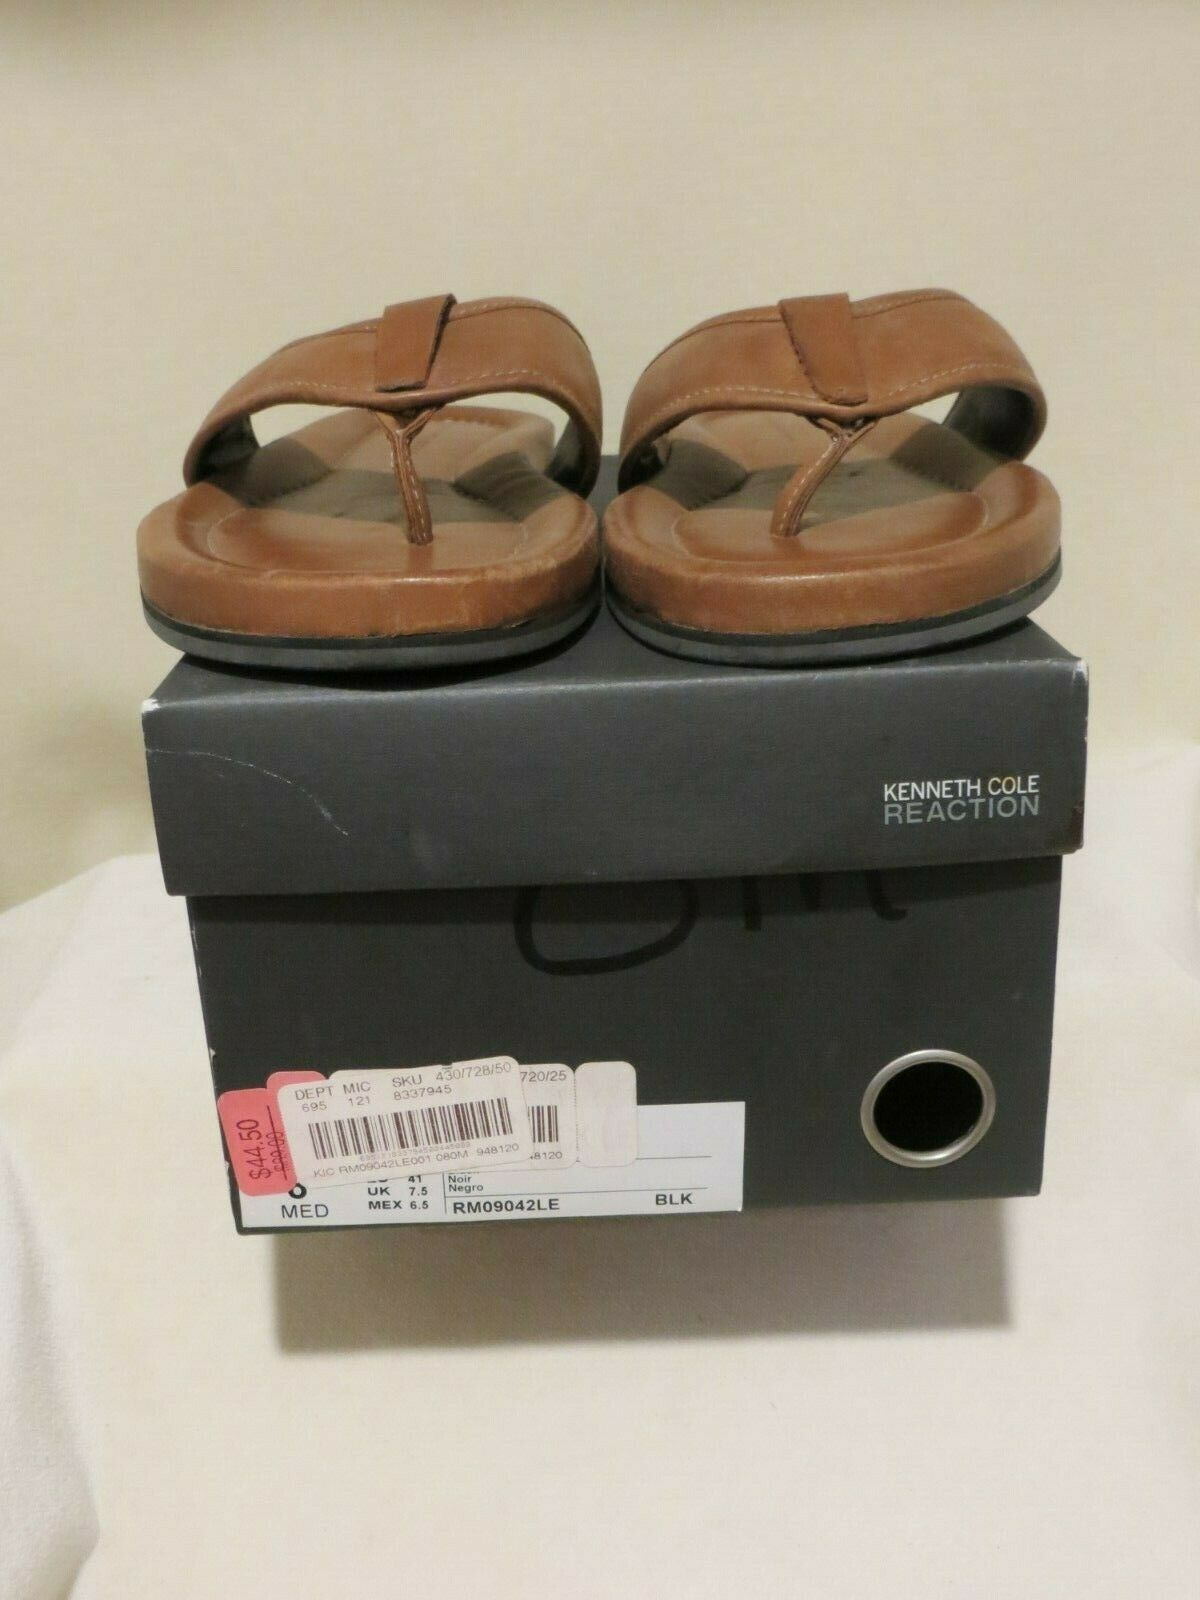 NIB Kenneth Cole Reaction Men's Leather Sandals in Size 7M